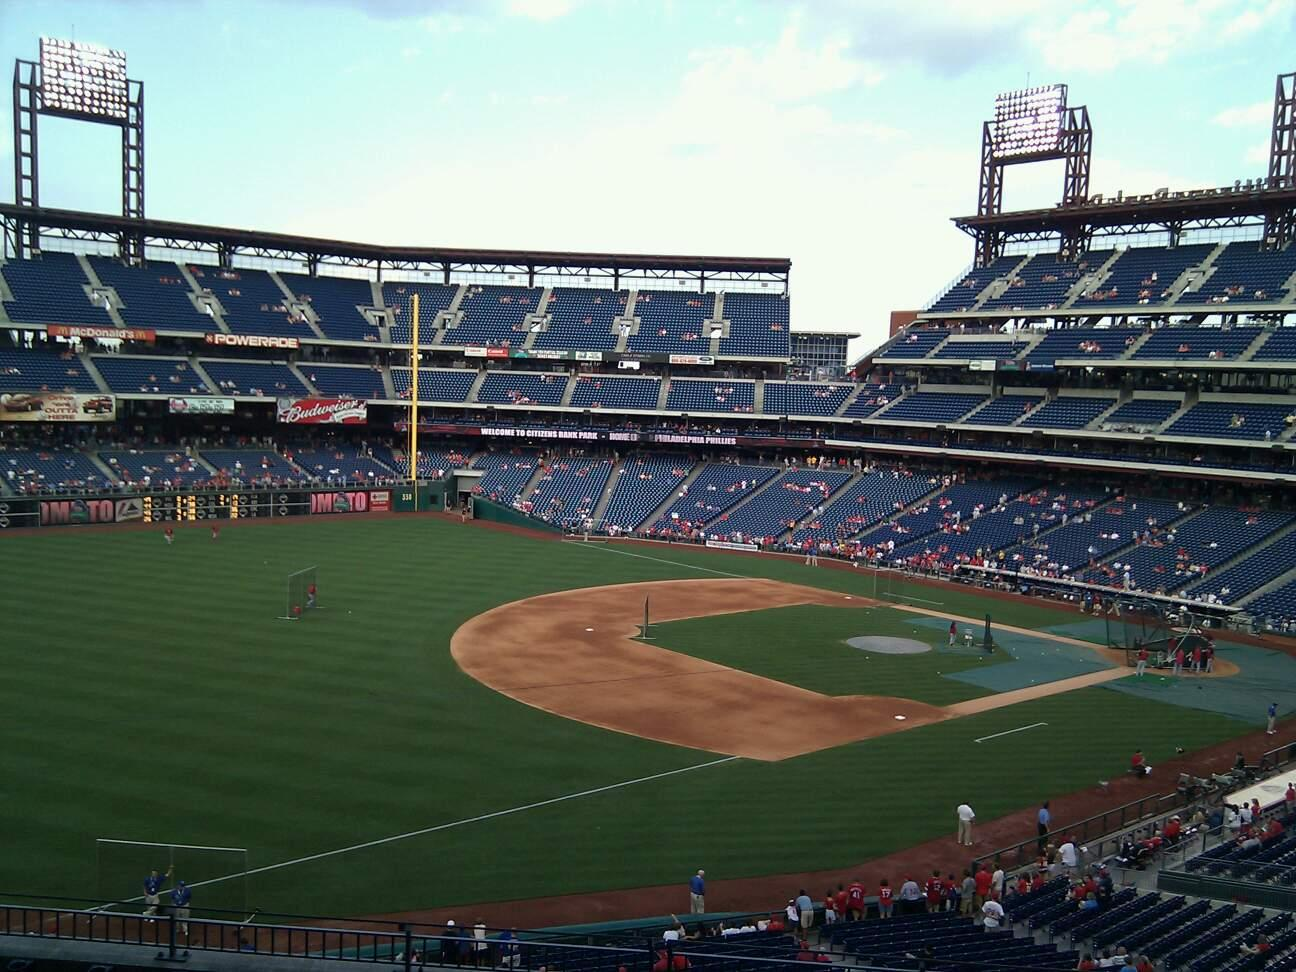 Citizens Bank Park Section 234 Row 8 Seat 9